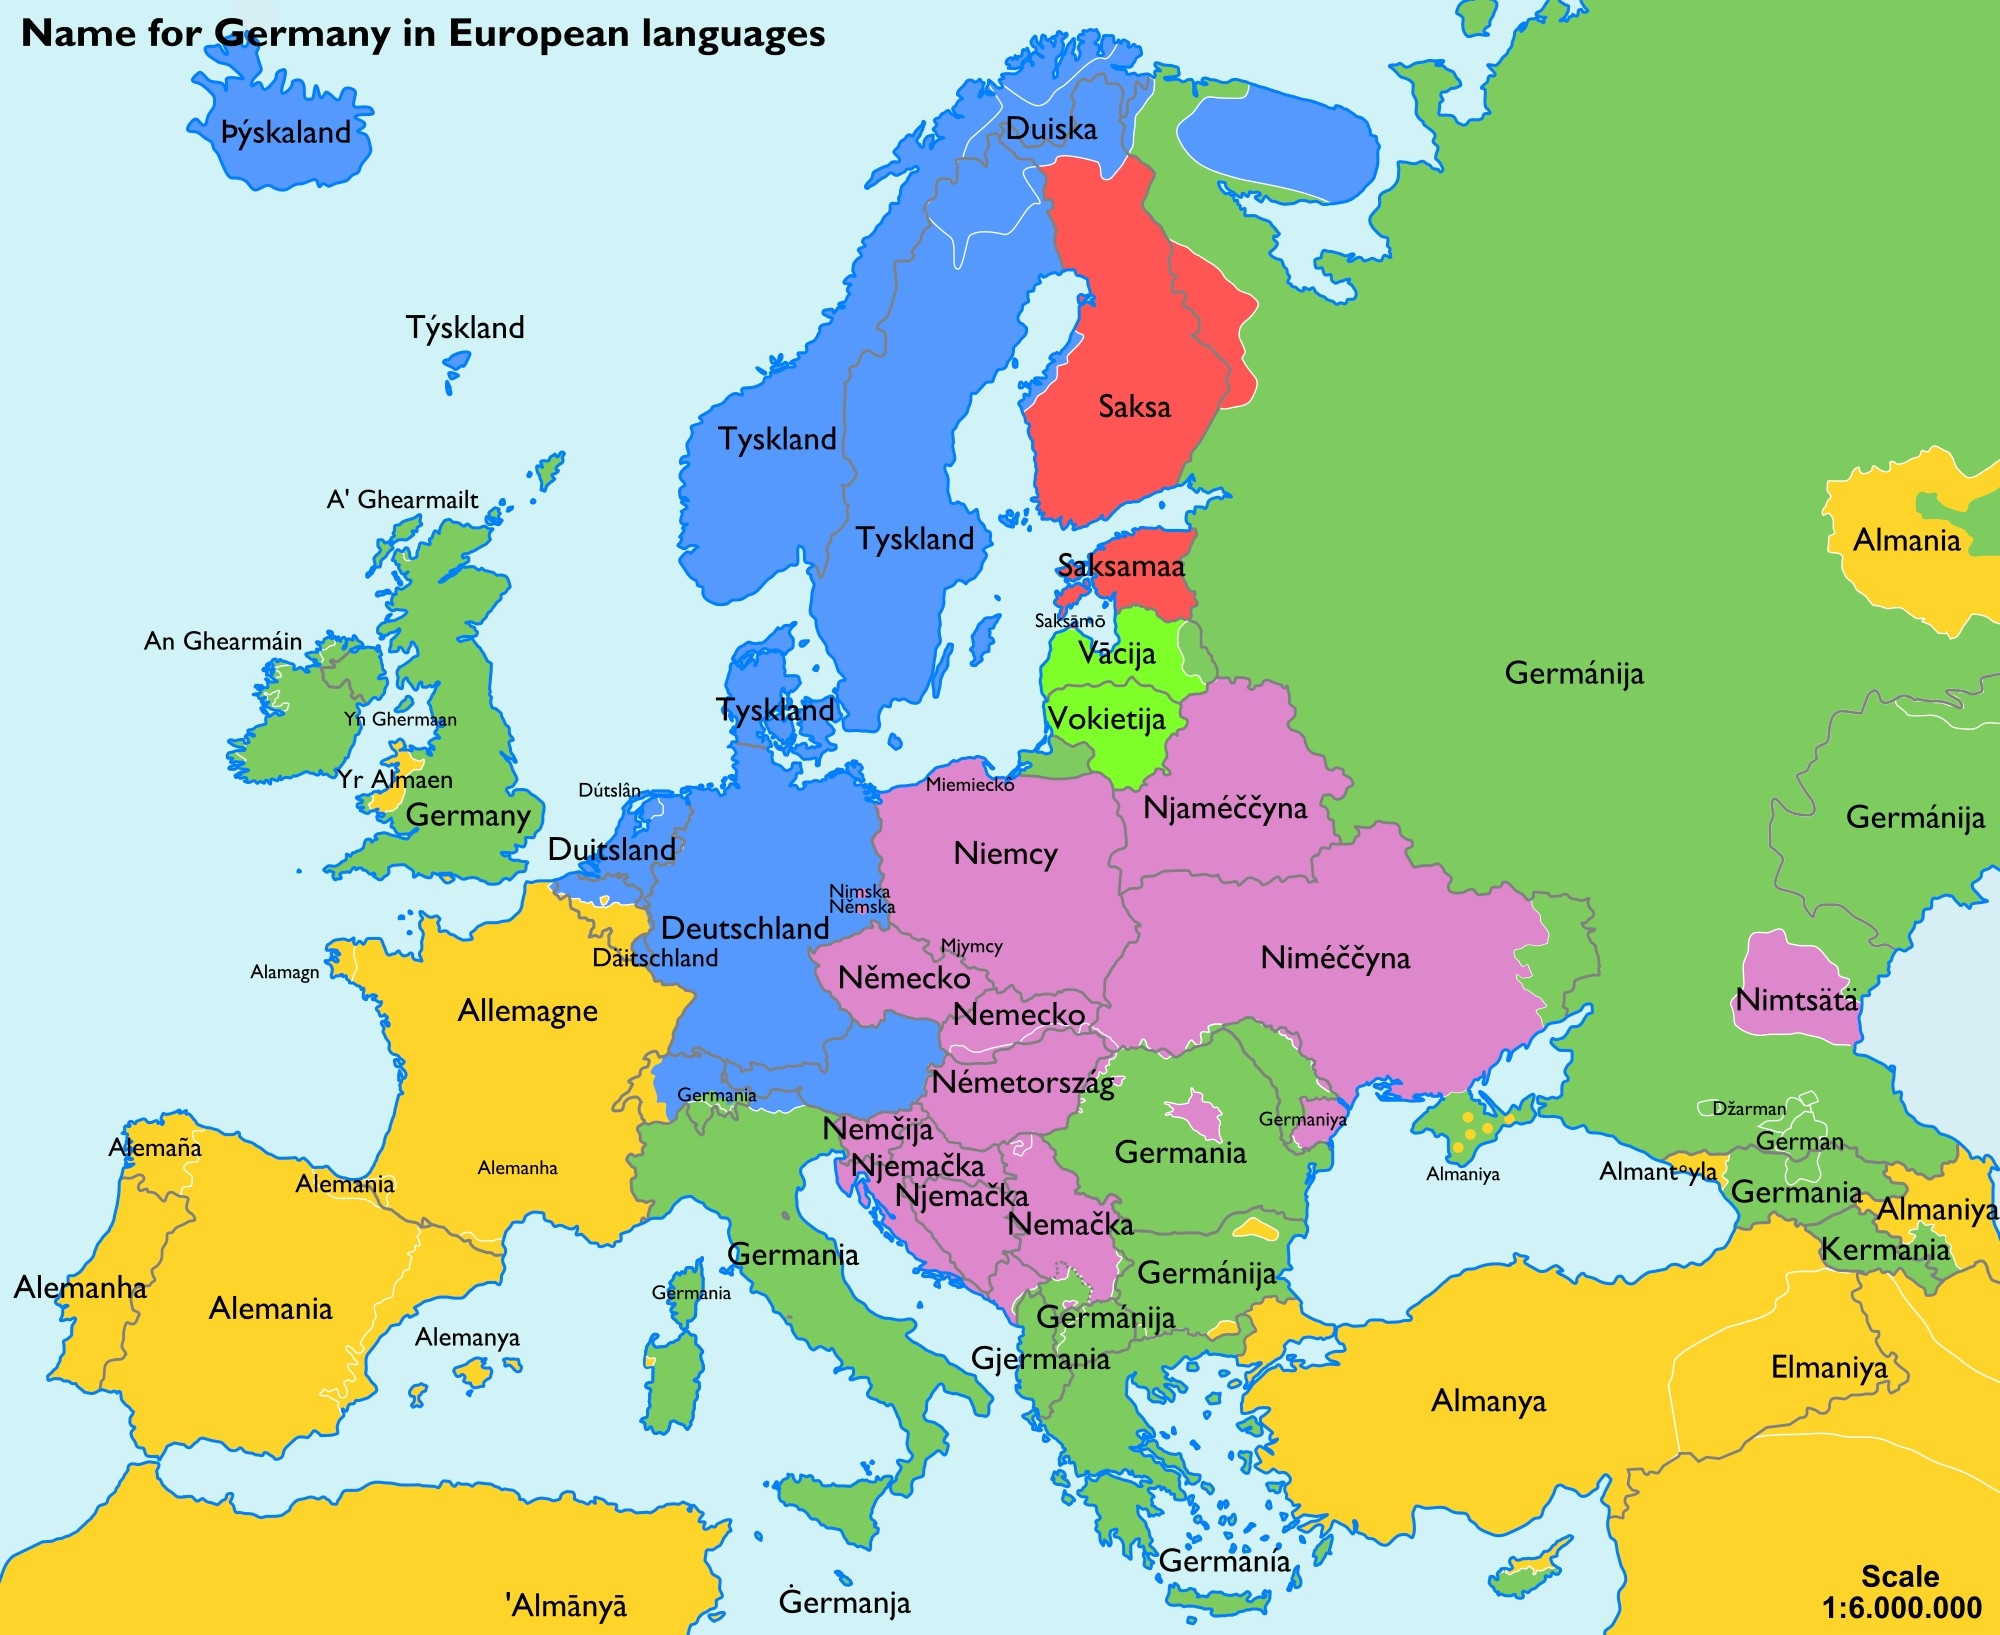 Germany Map Europe - World Wide Maps pertaining to Europe Map With Germany Highlighted